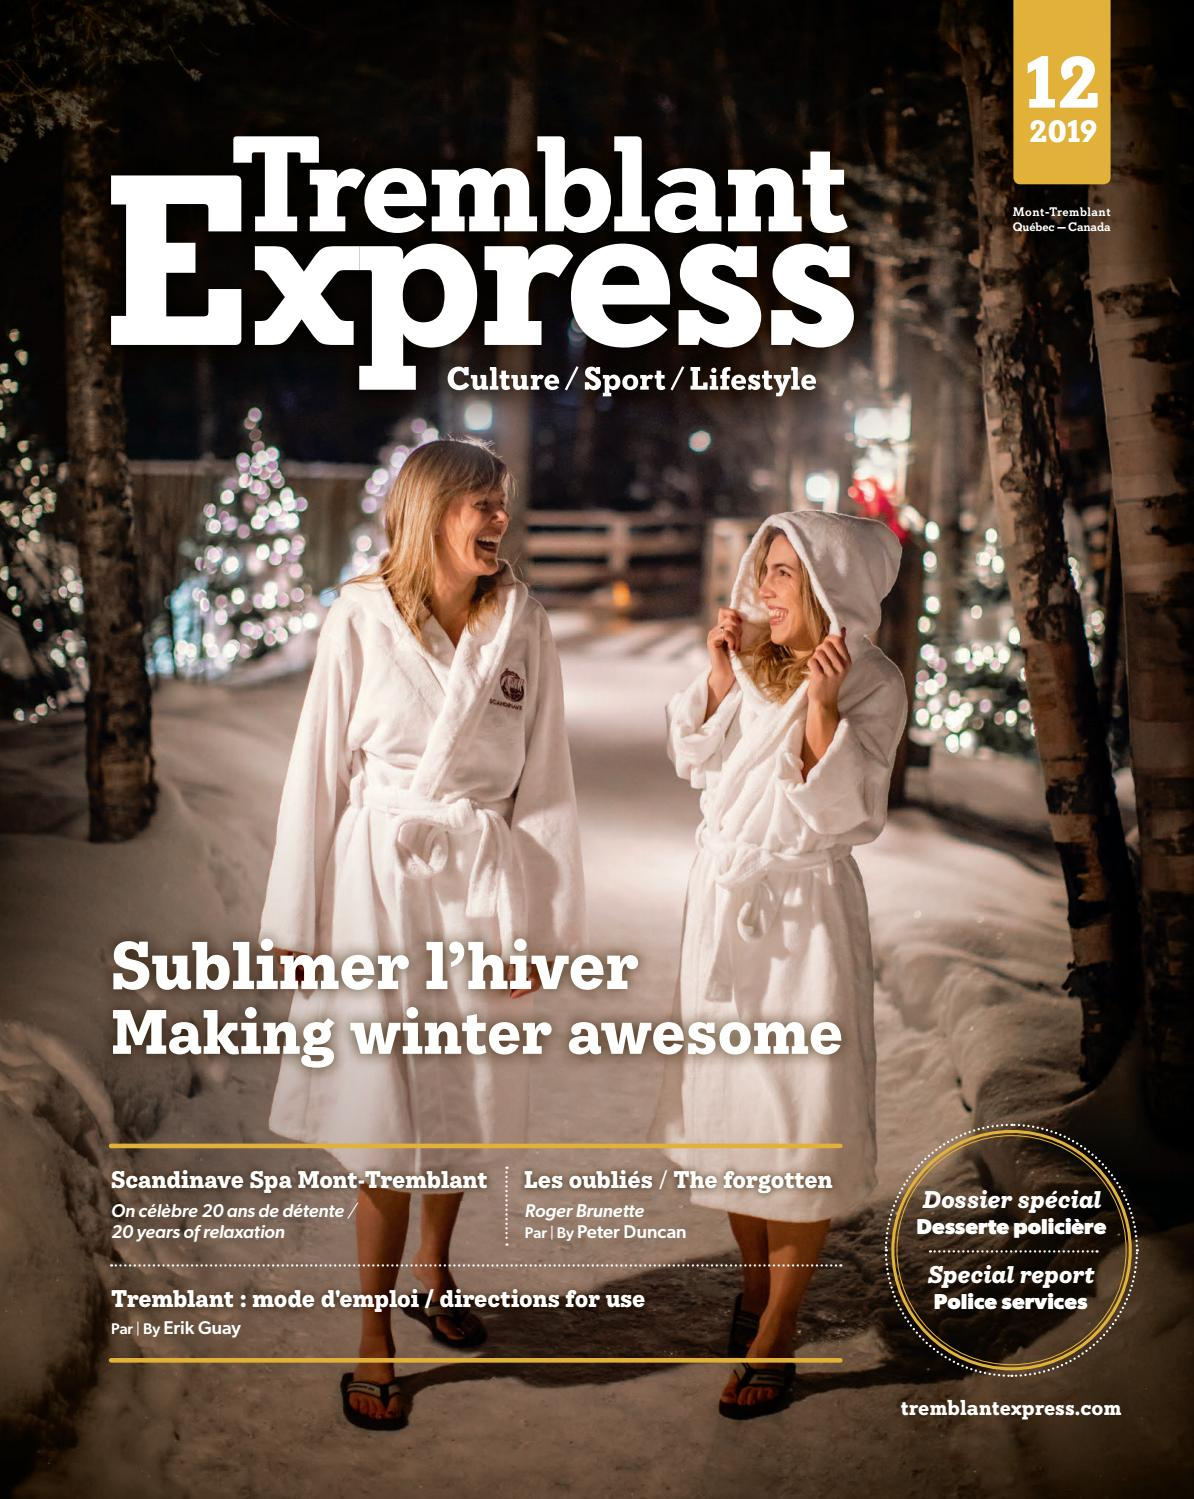 Tremblant Express décembre 2019 by Tremblant Express issuu